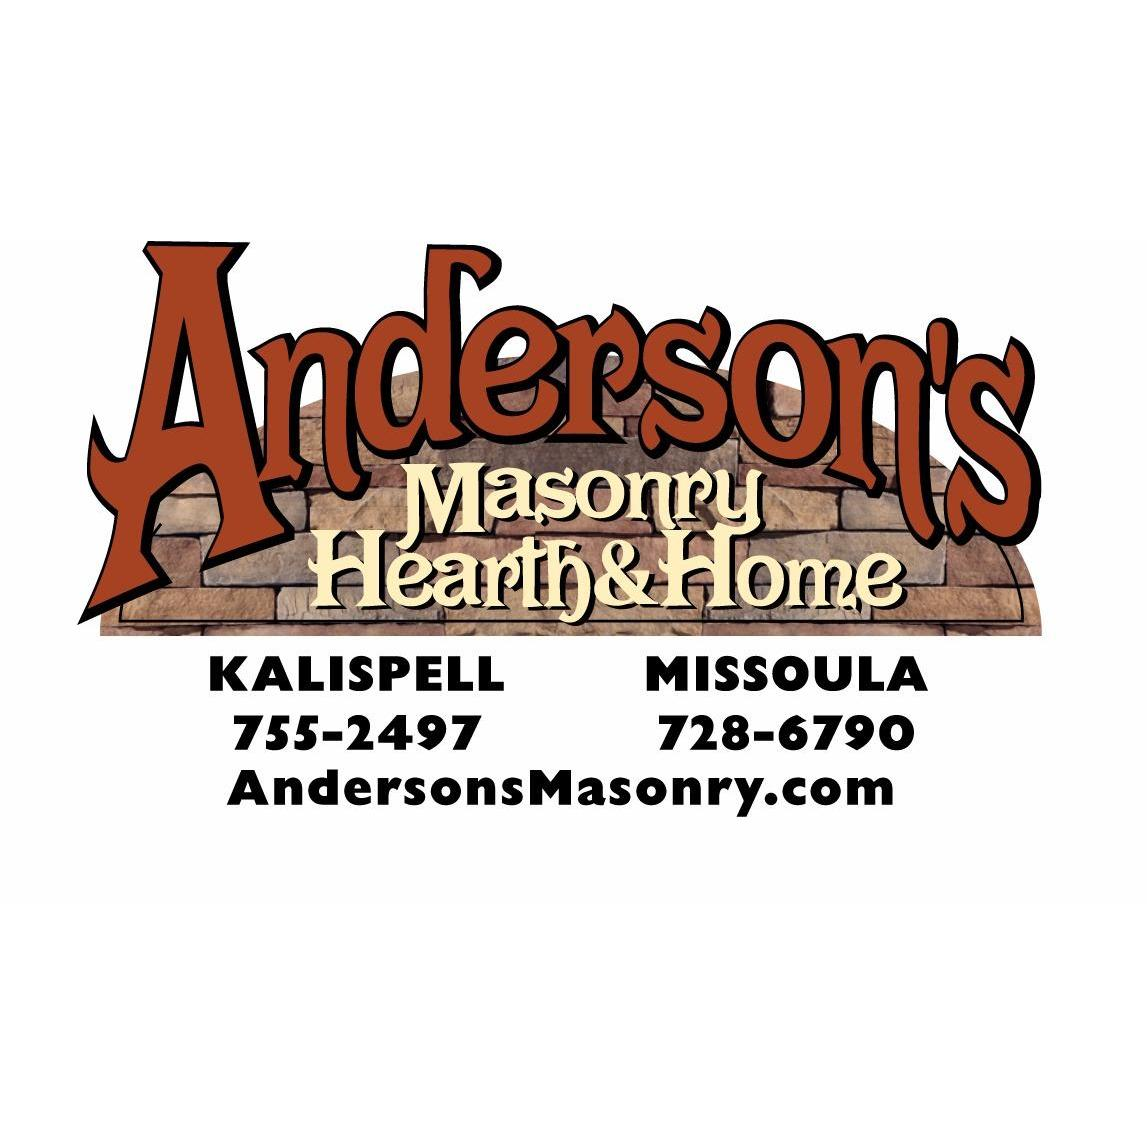 Drive From Woodland Park Co To: Anderson's Masonry Hearth And Home 16 Woodland Park Drive